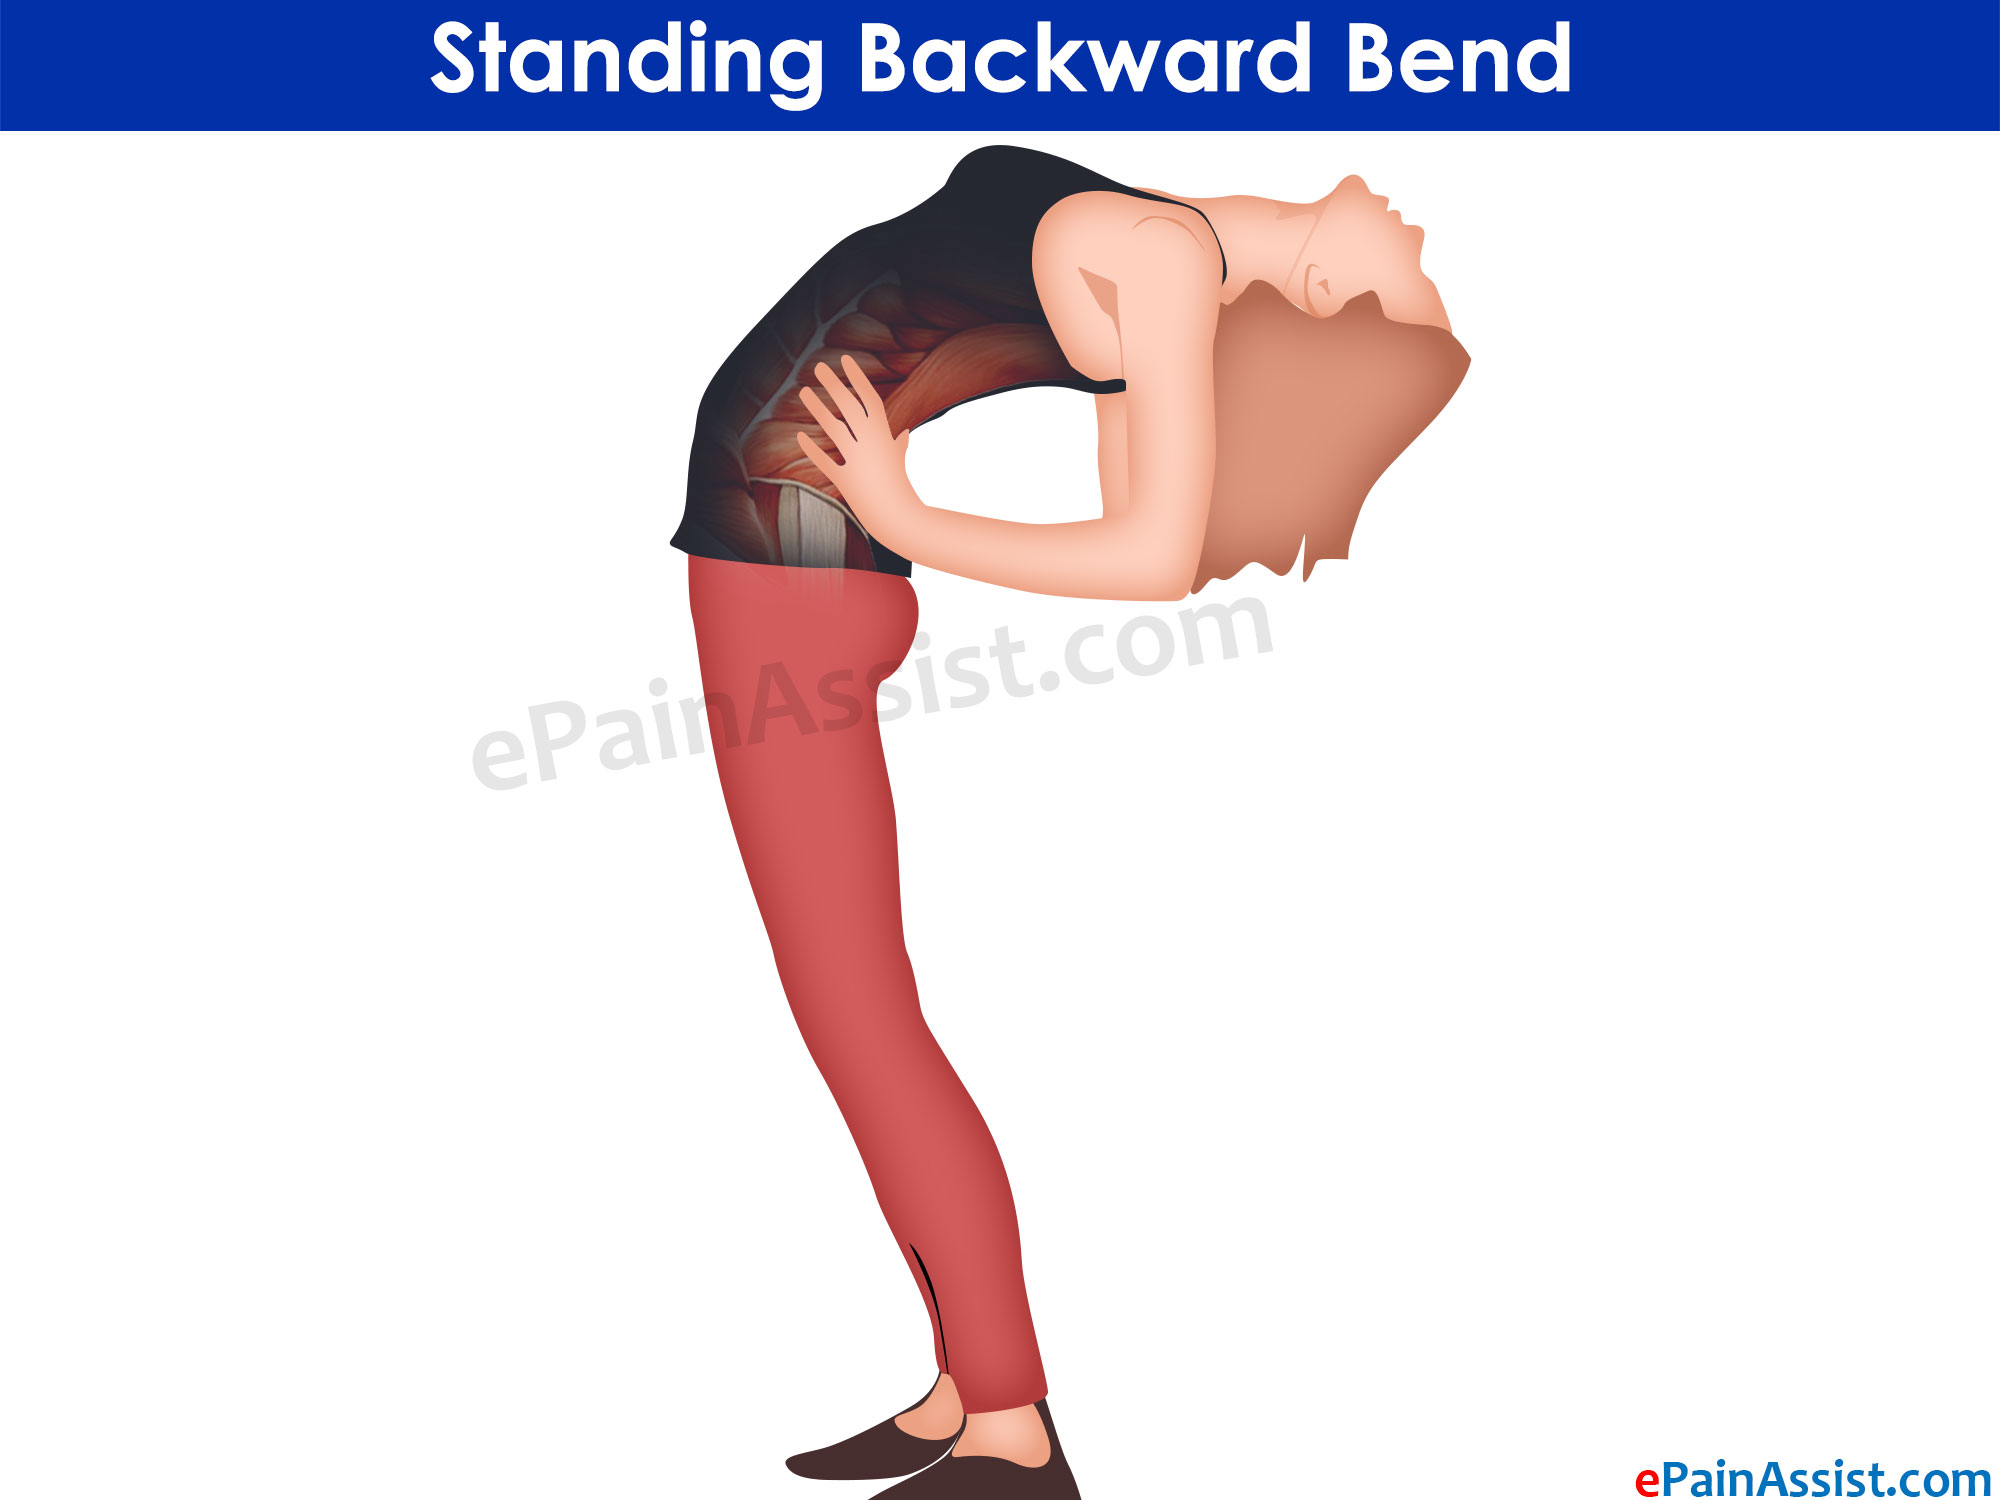 Standing Backward Bend